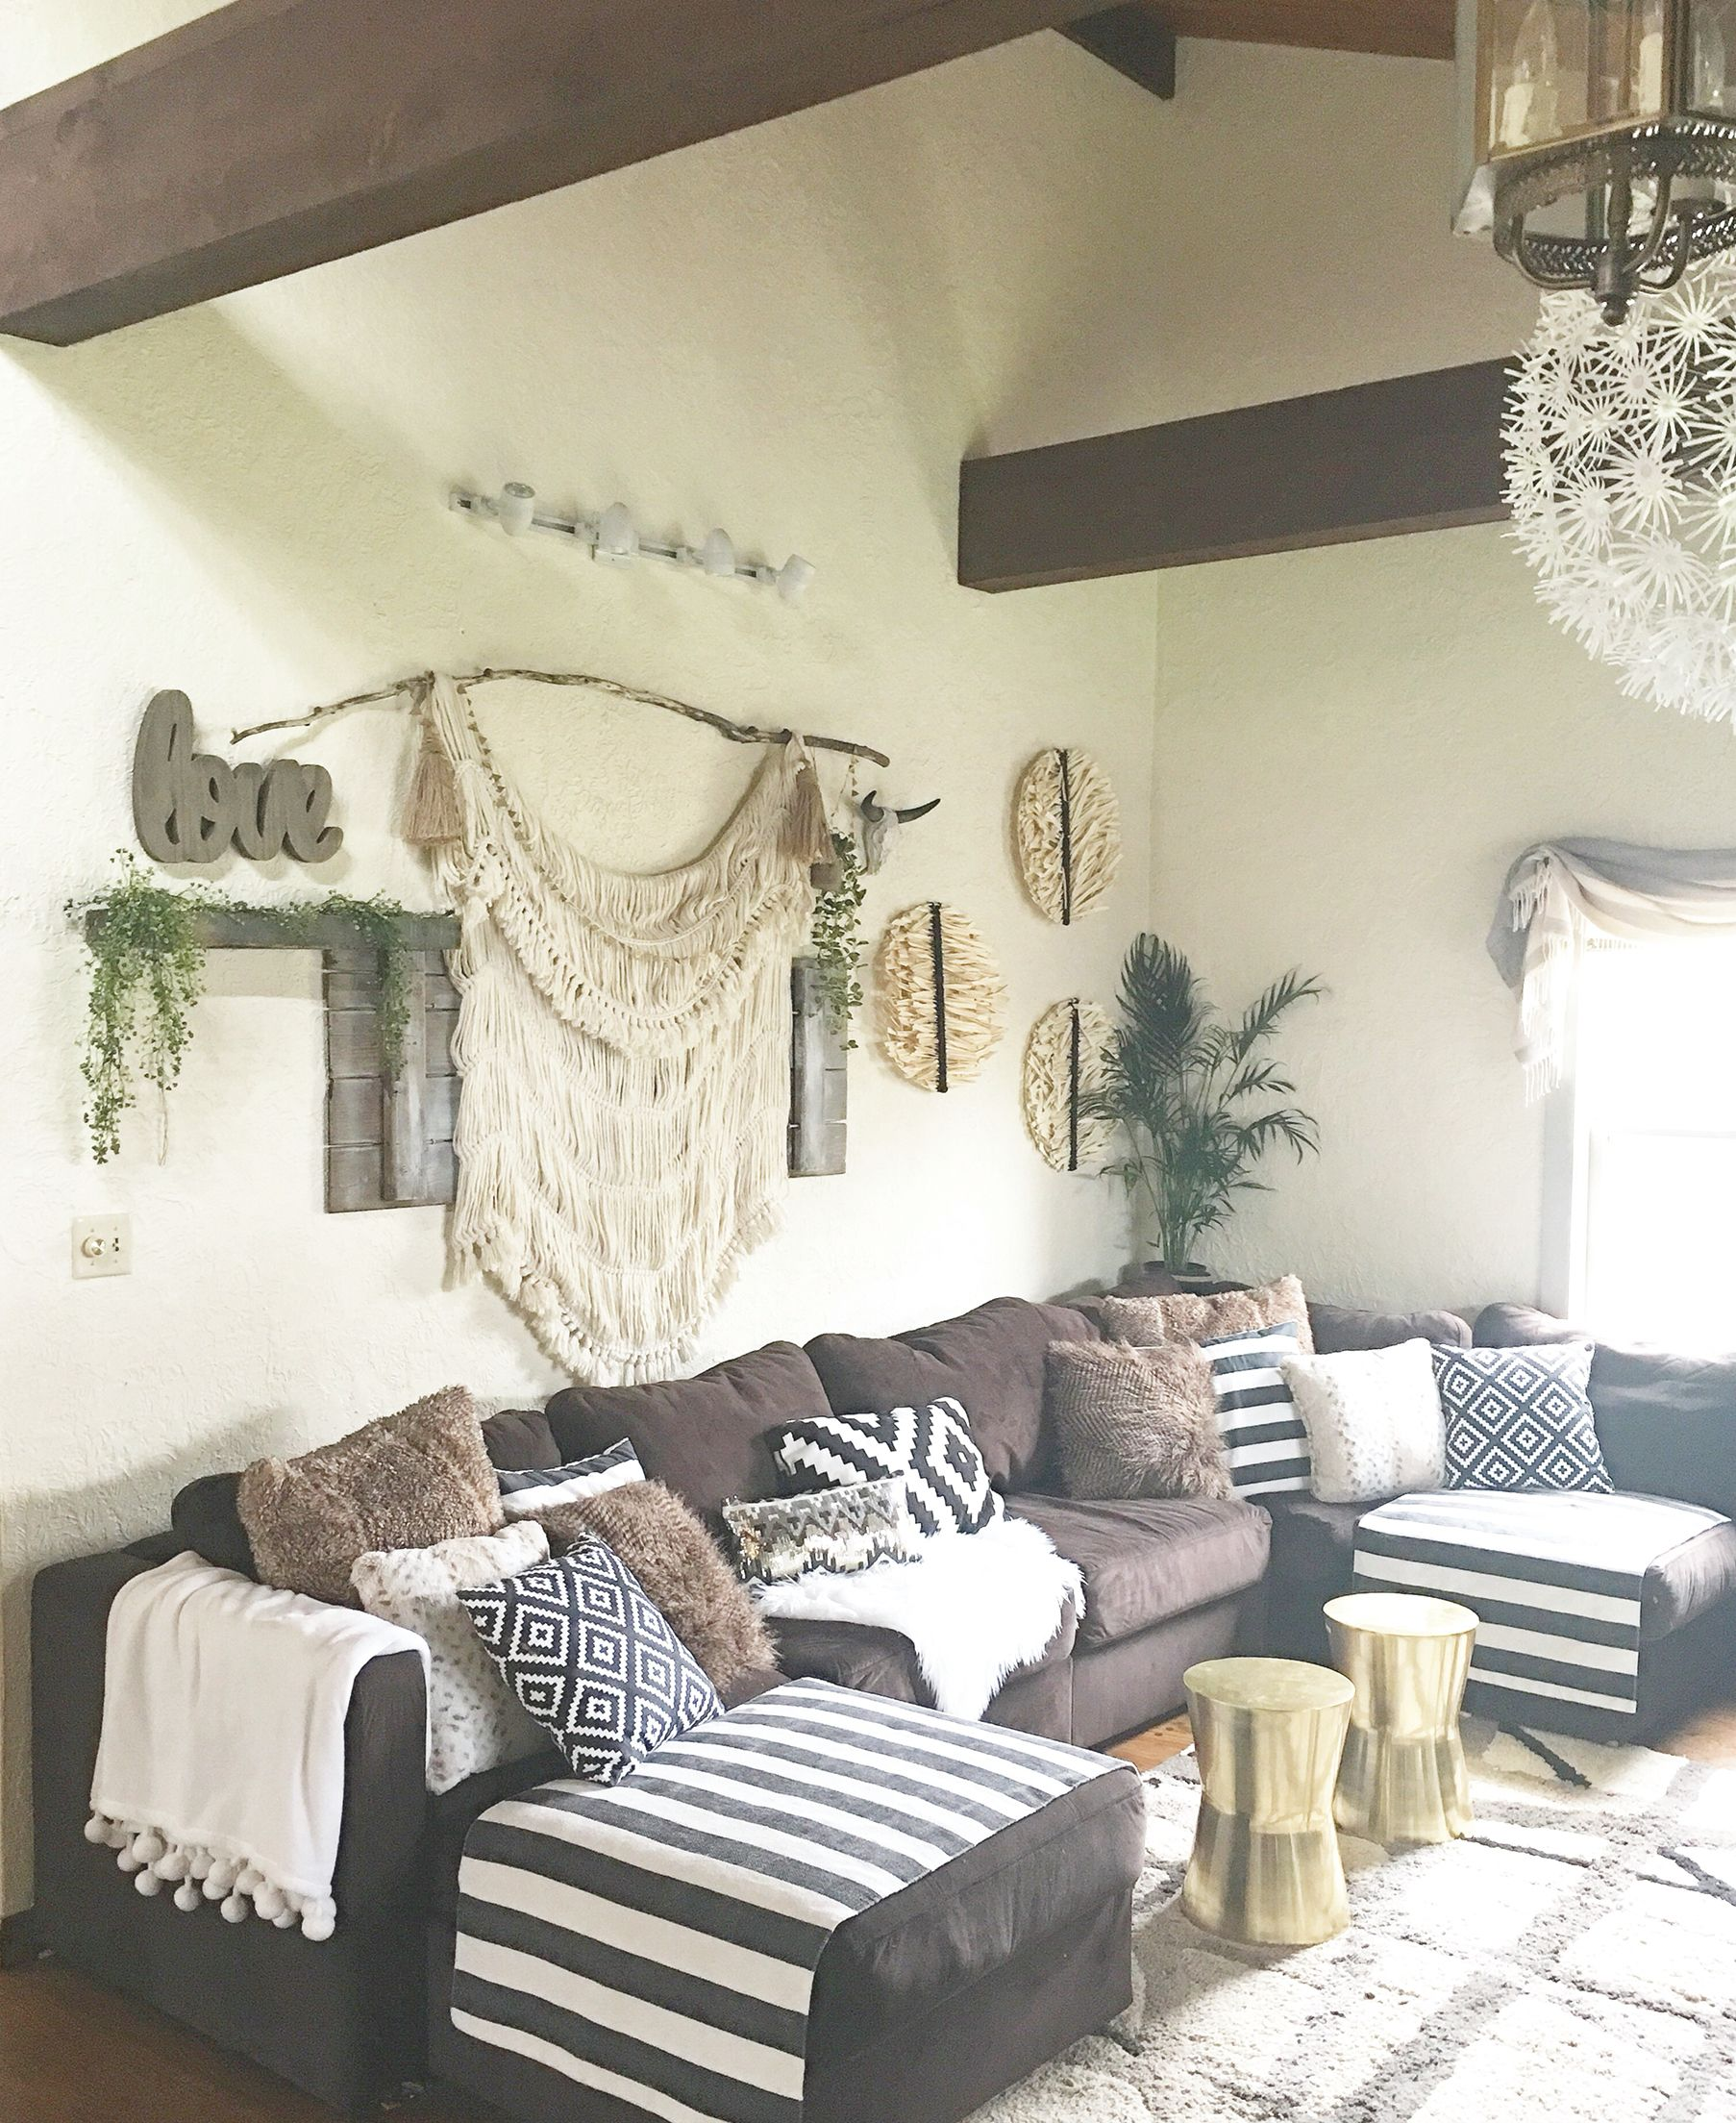 Boho Rustic Glam Living Room cozy little space